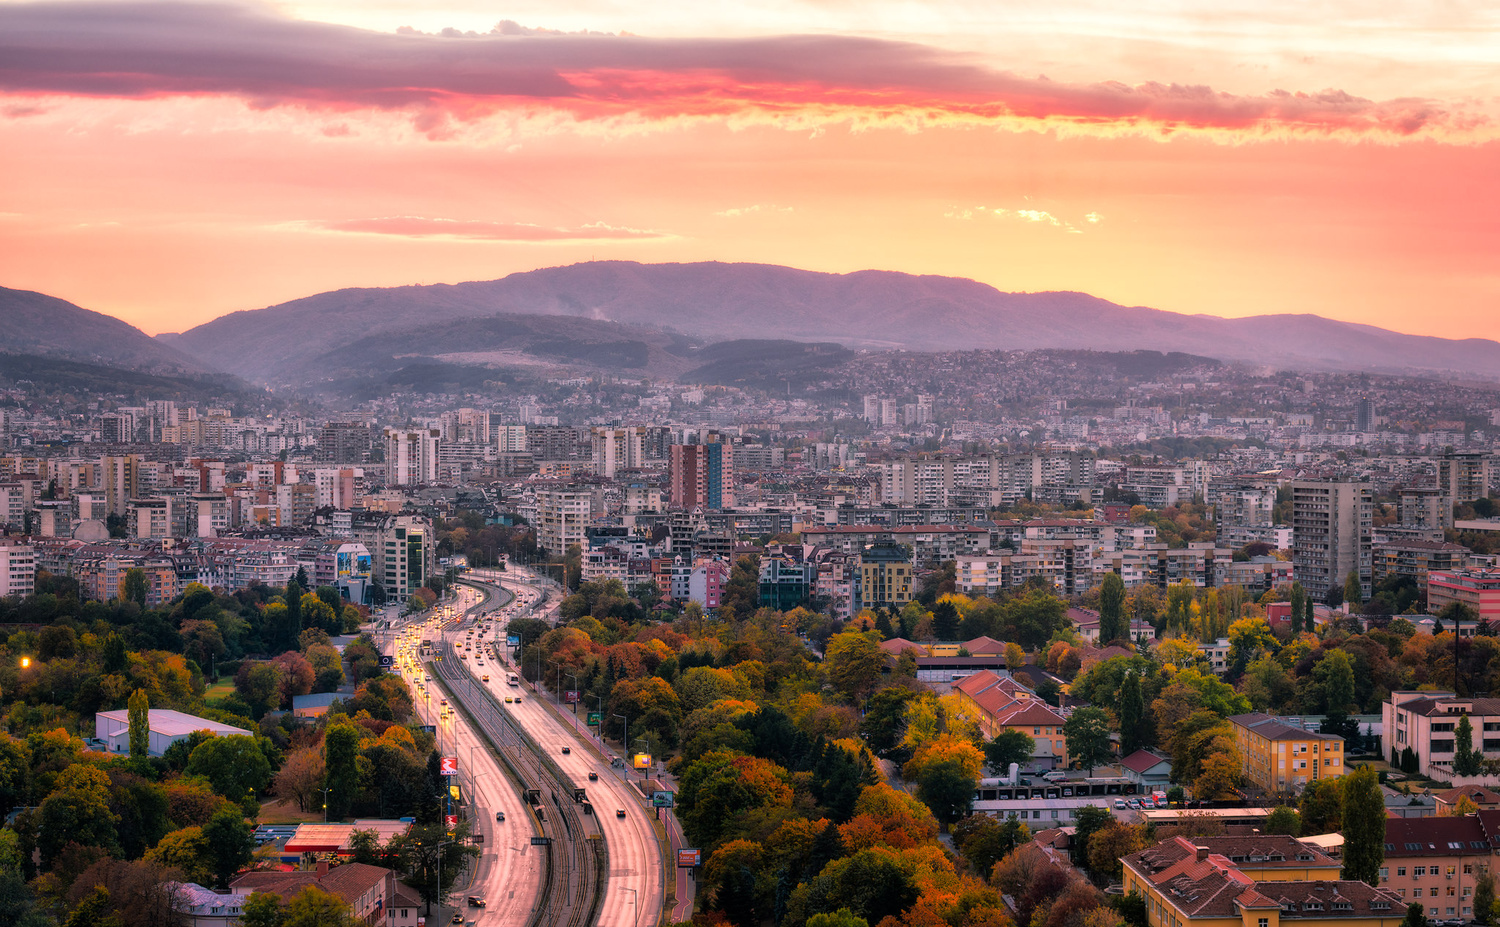 Mountain Panorama | Sofia, Bulgaria by Nico Trinkhaus